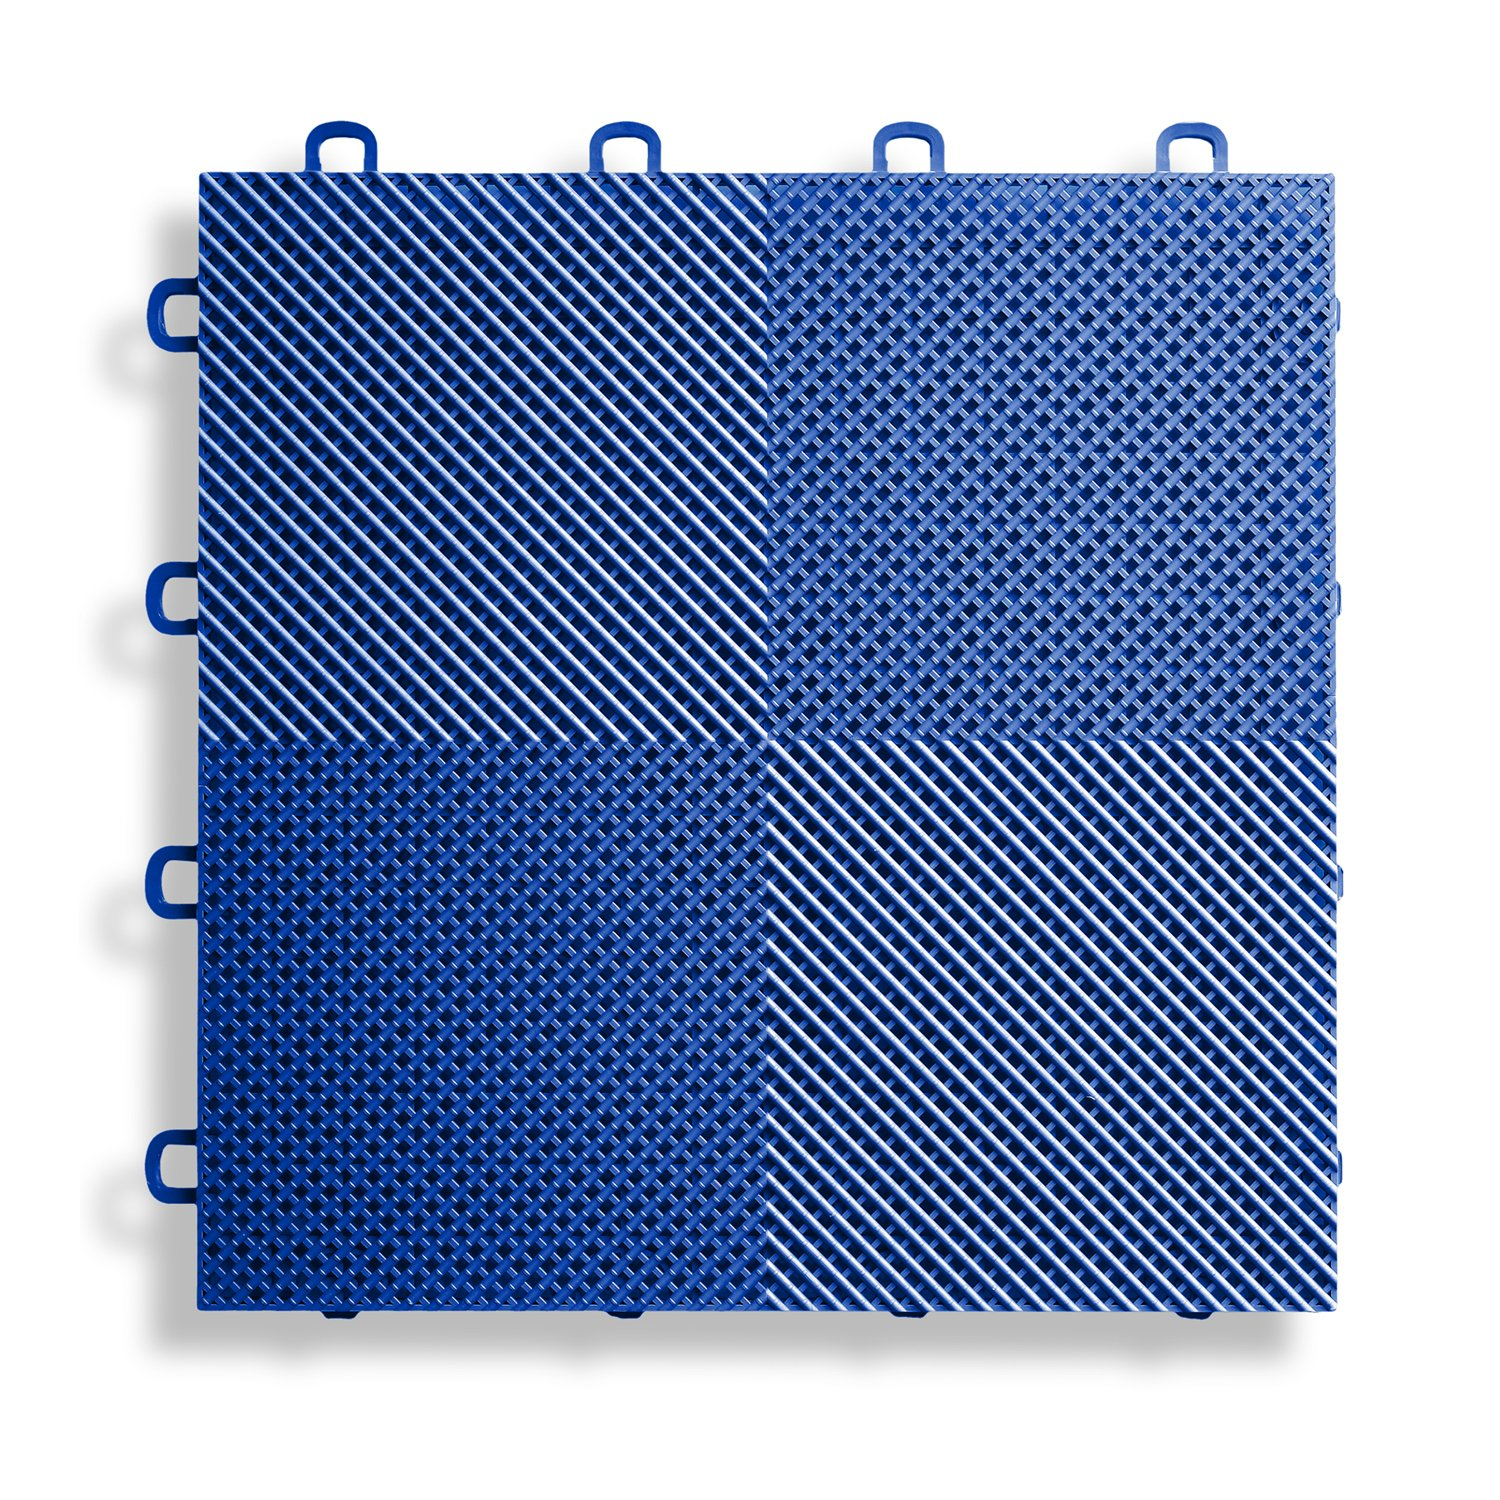 BlockTile B2US4530 Deck and Patio Flooring Interlocking Tiles Perforated Pack, Blue, 30-Pack